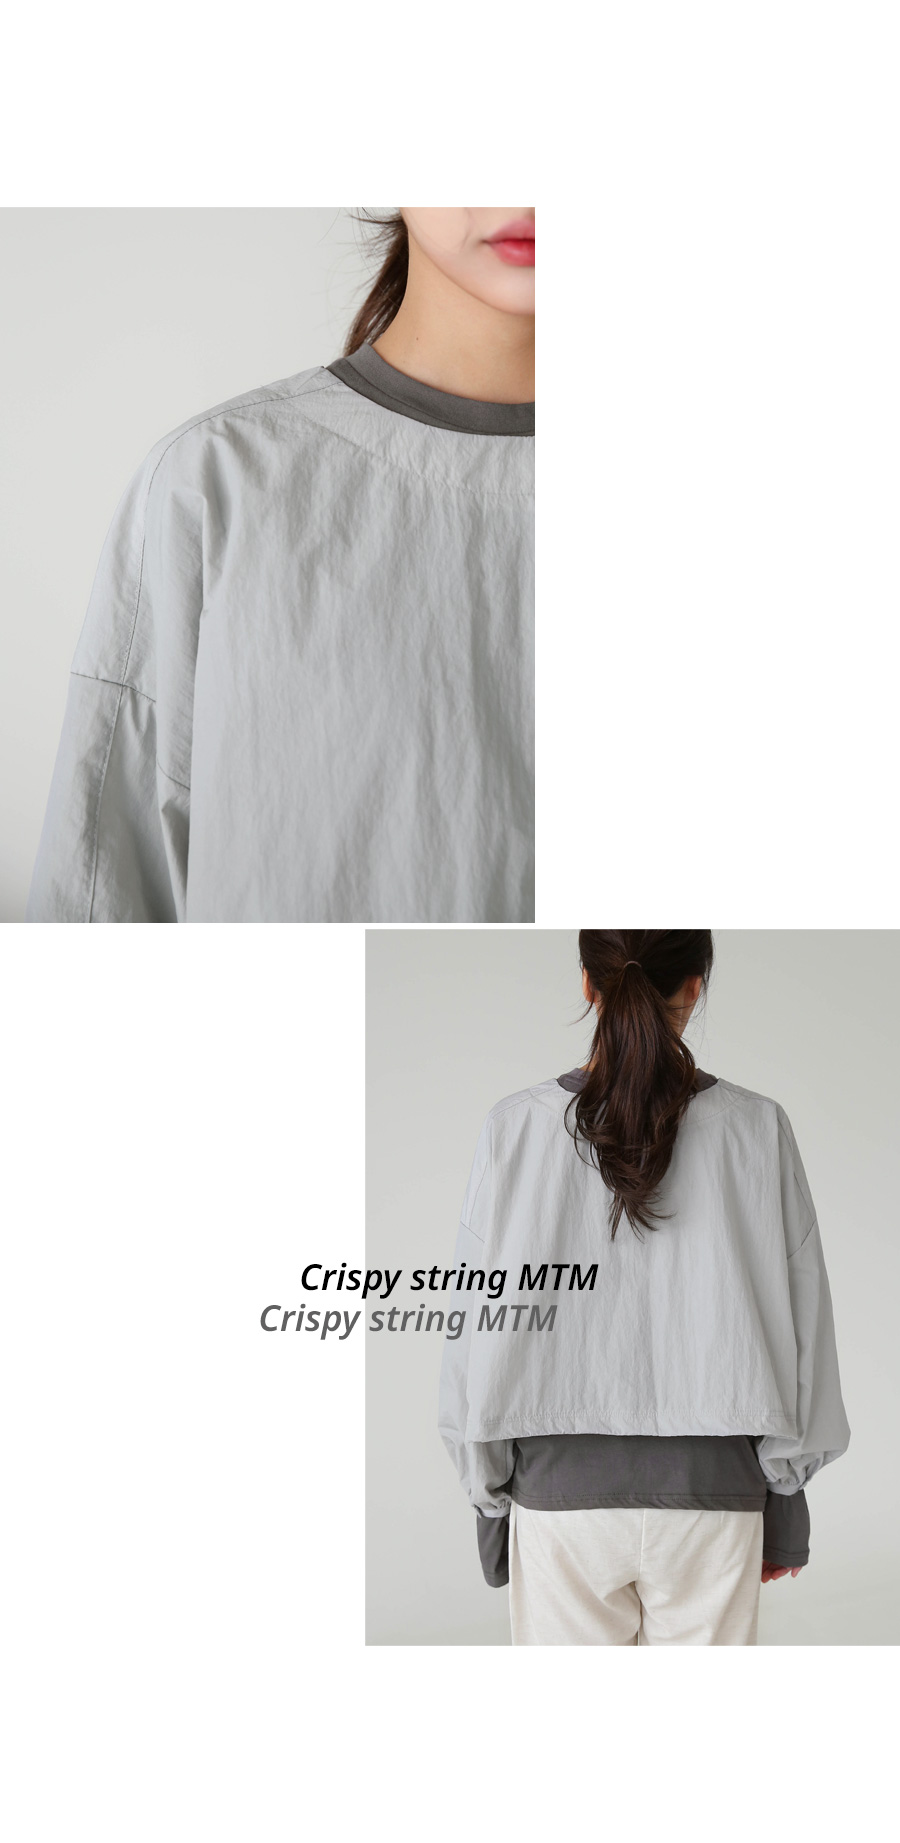 Crispy string person-to-person